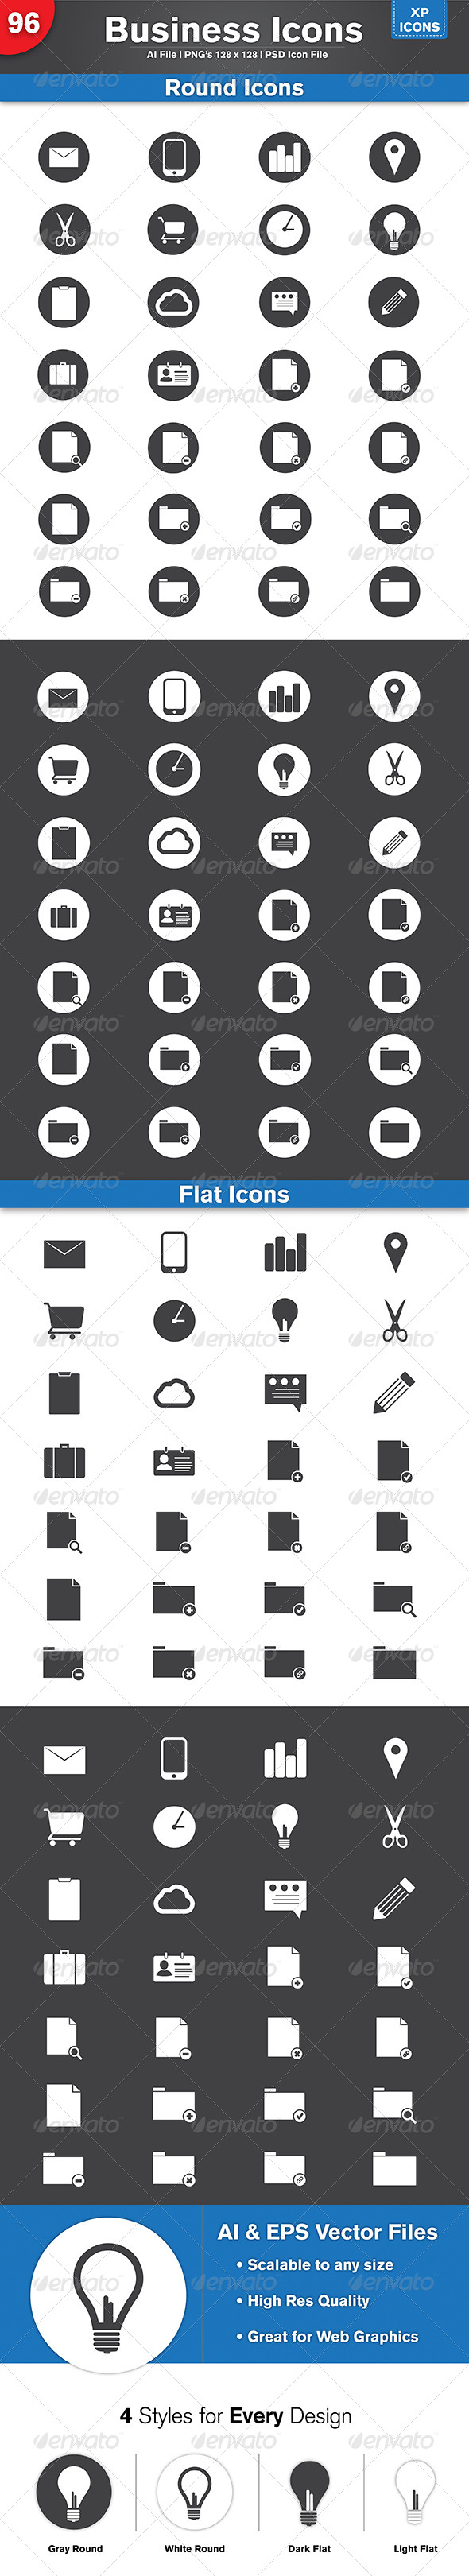 96 Flat & Round Business Icons - Icons